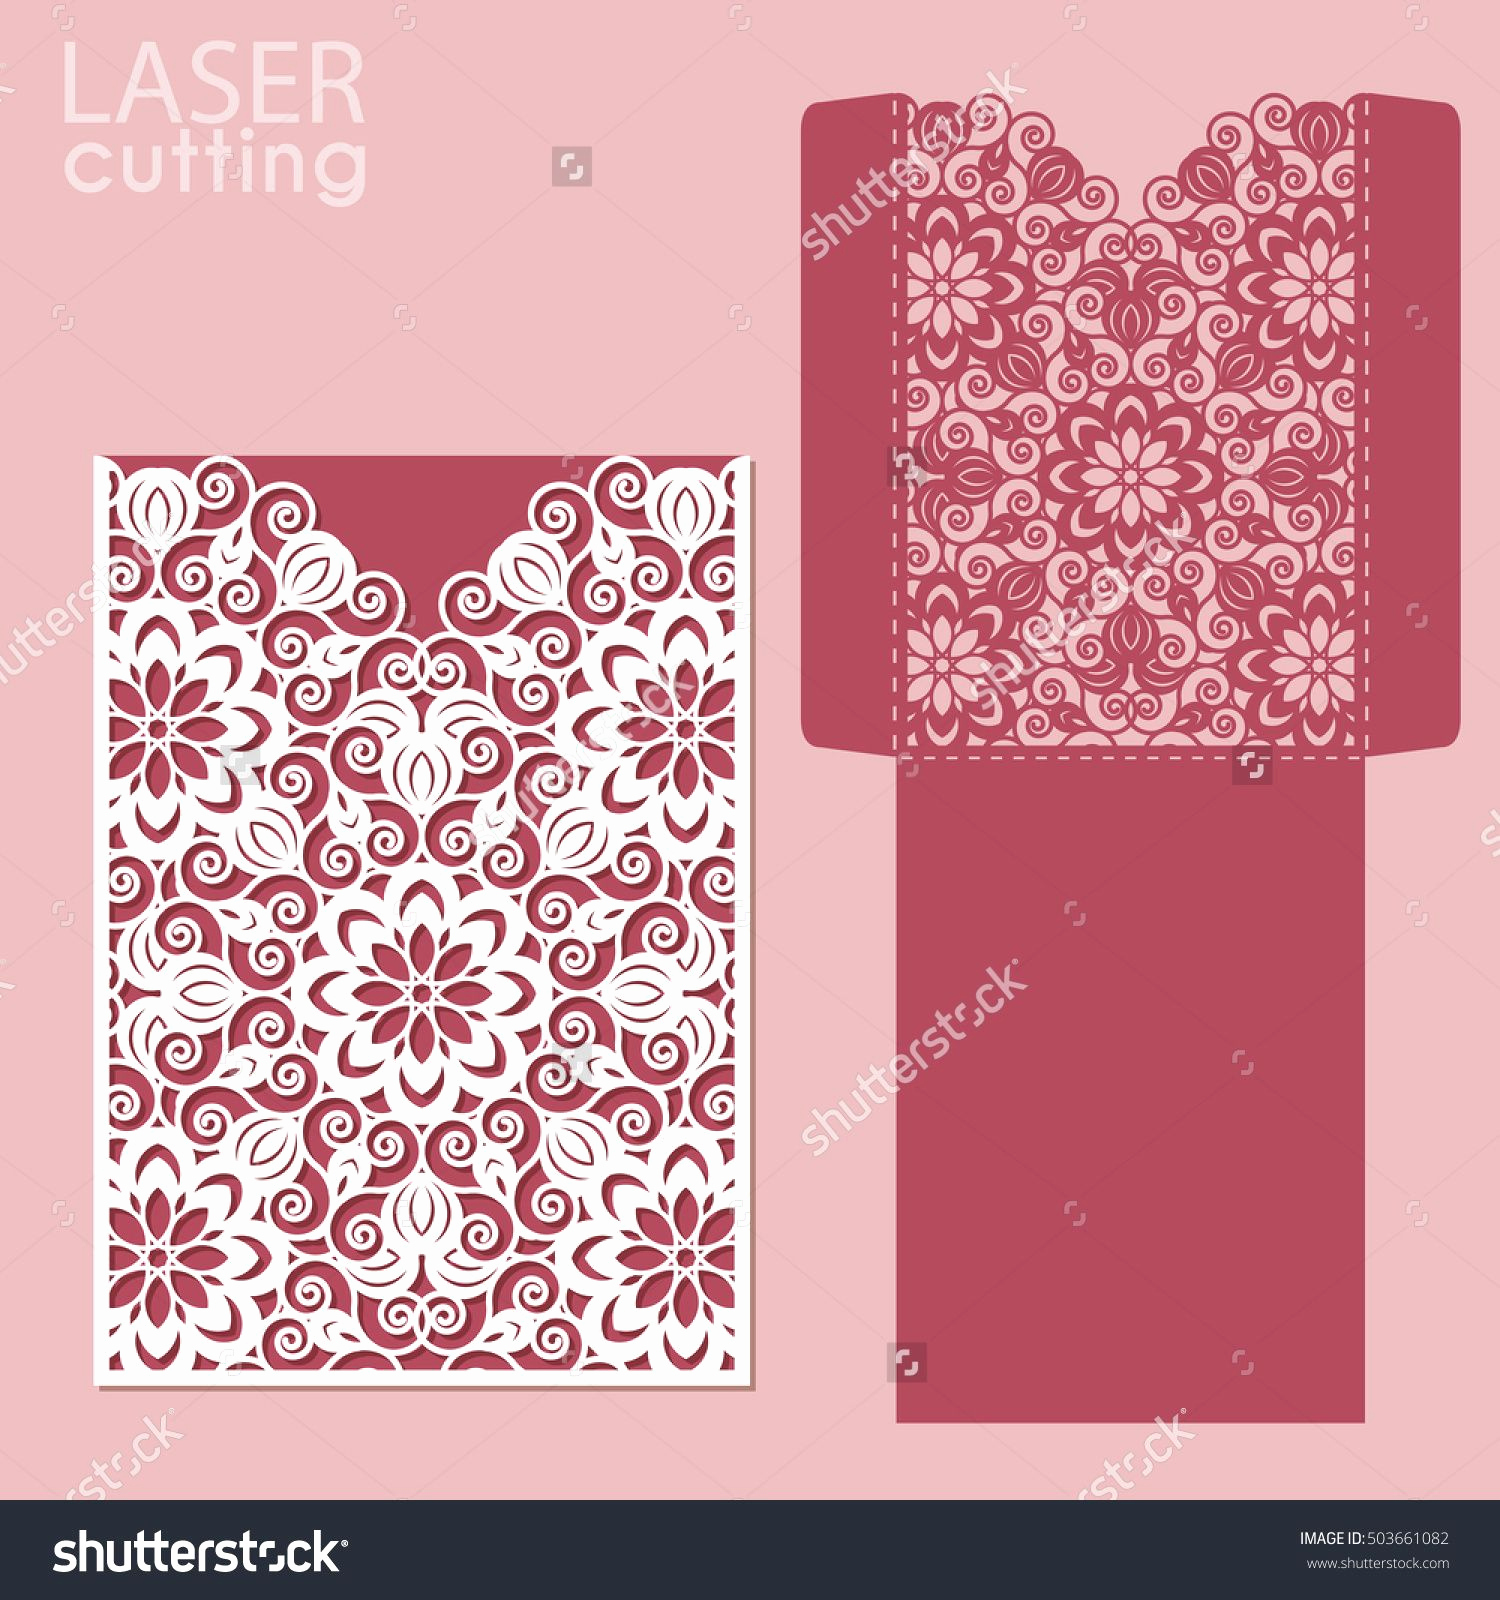 Wedding Invitation Envelope Template Lovely Die Laser Cut Wedding Card Vector Template Invitation